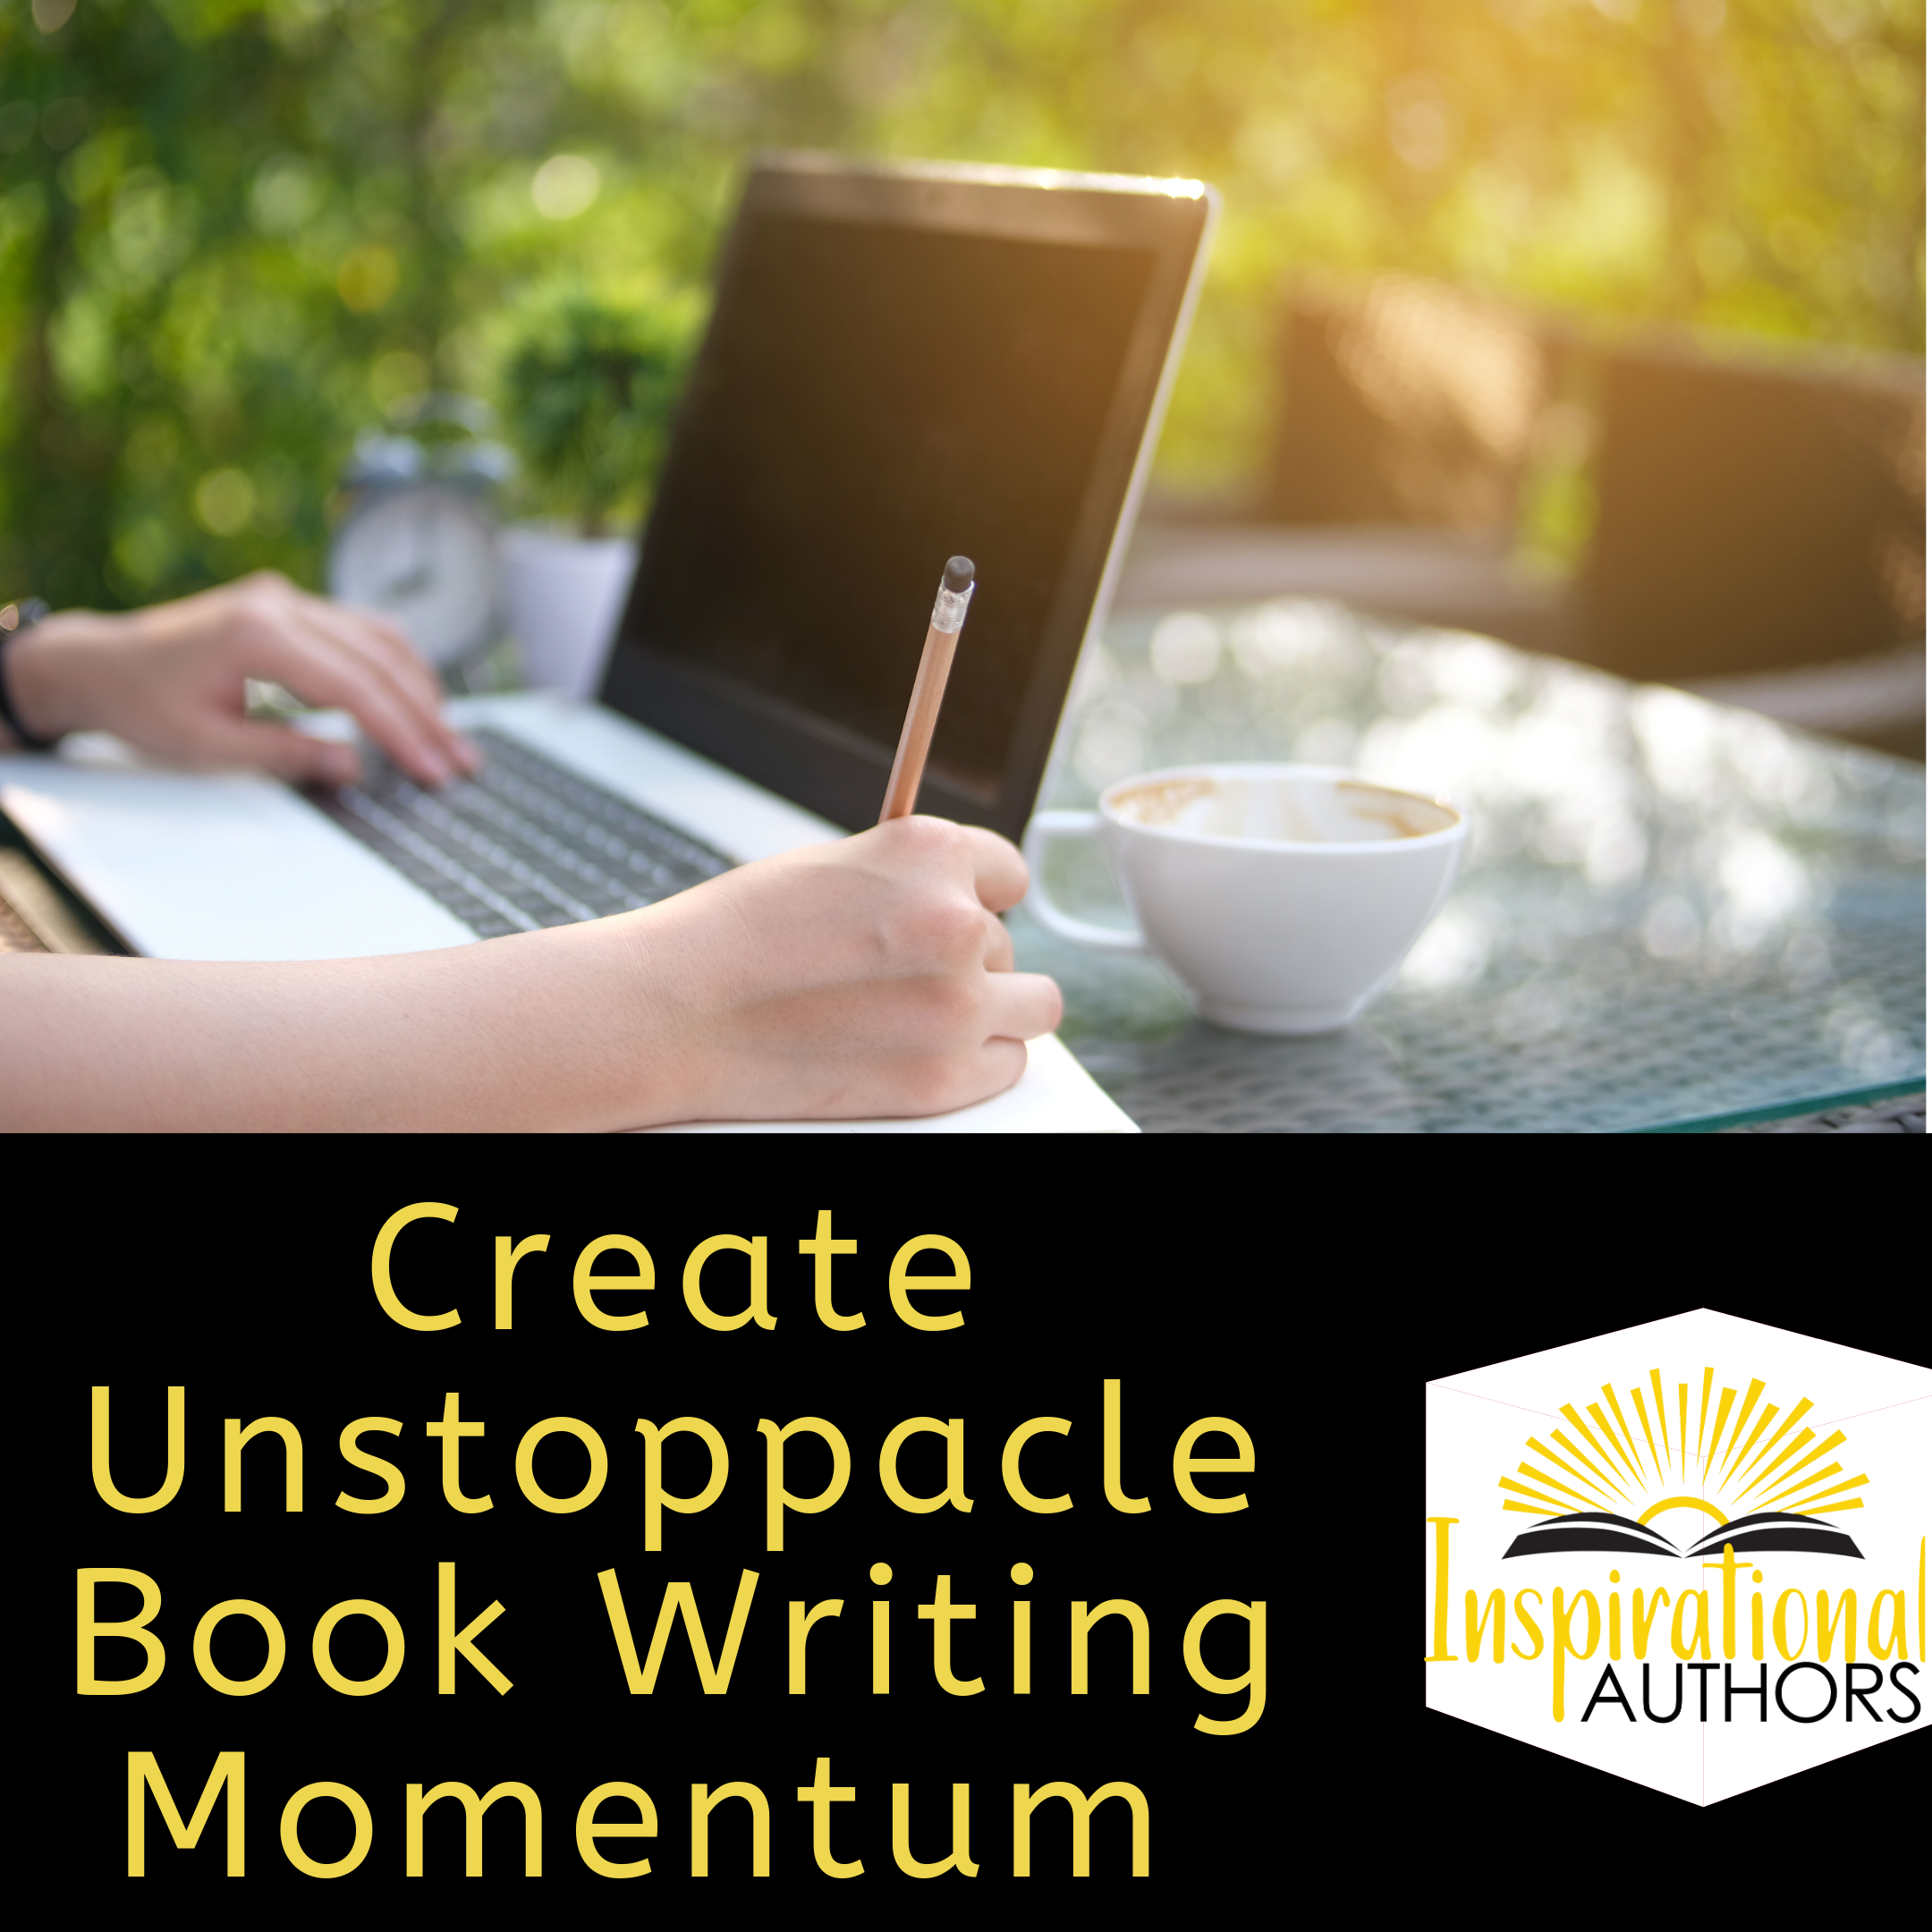 5 Strategies to Create Unstoppable Book Writing Momentum